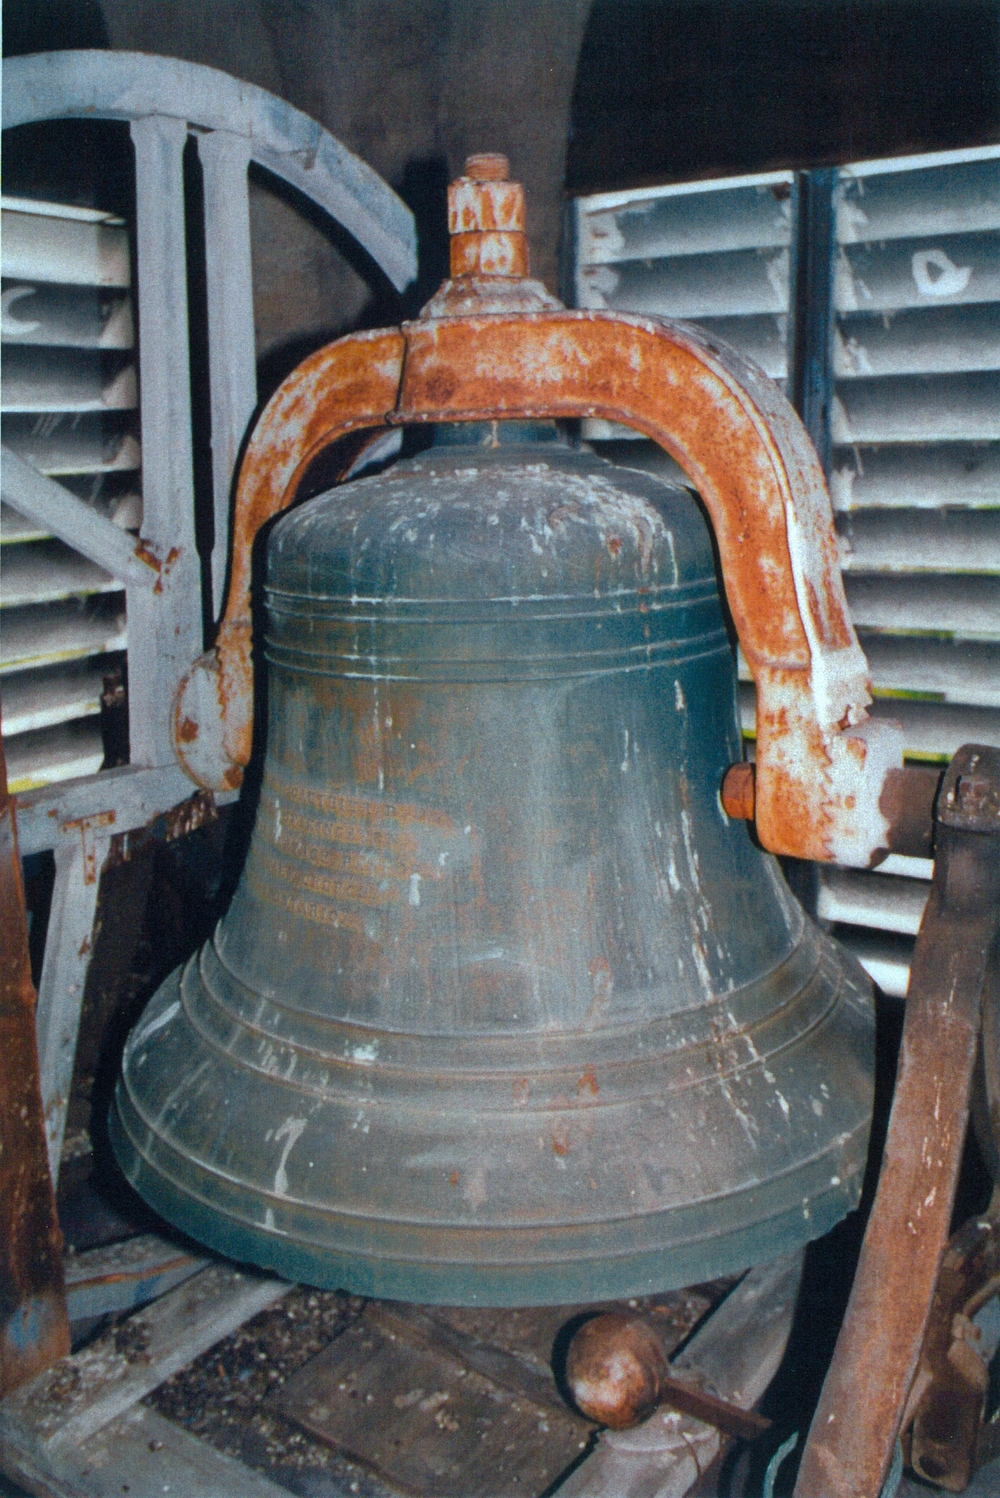 Click here to read about the McShane Bell Foundry that made the bell.